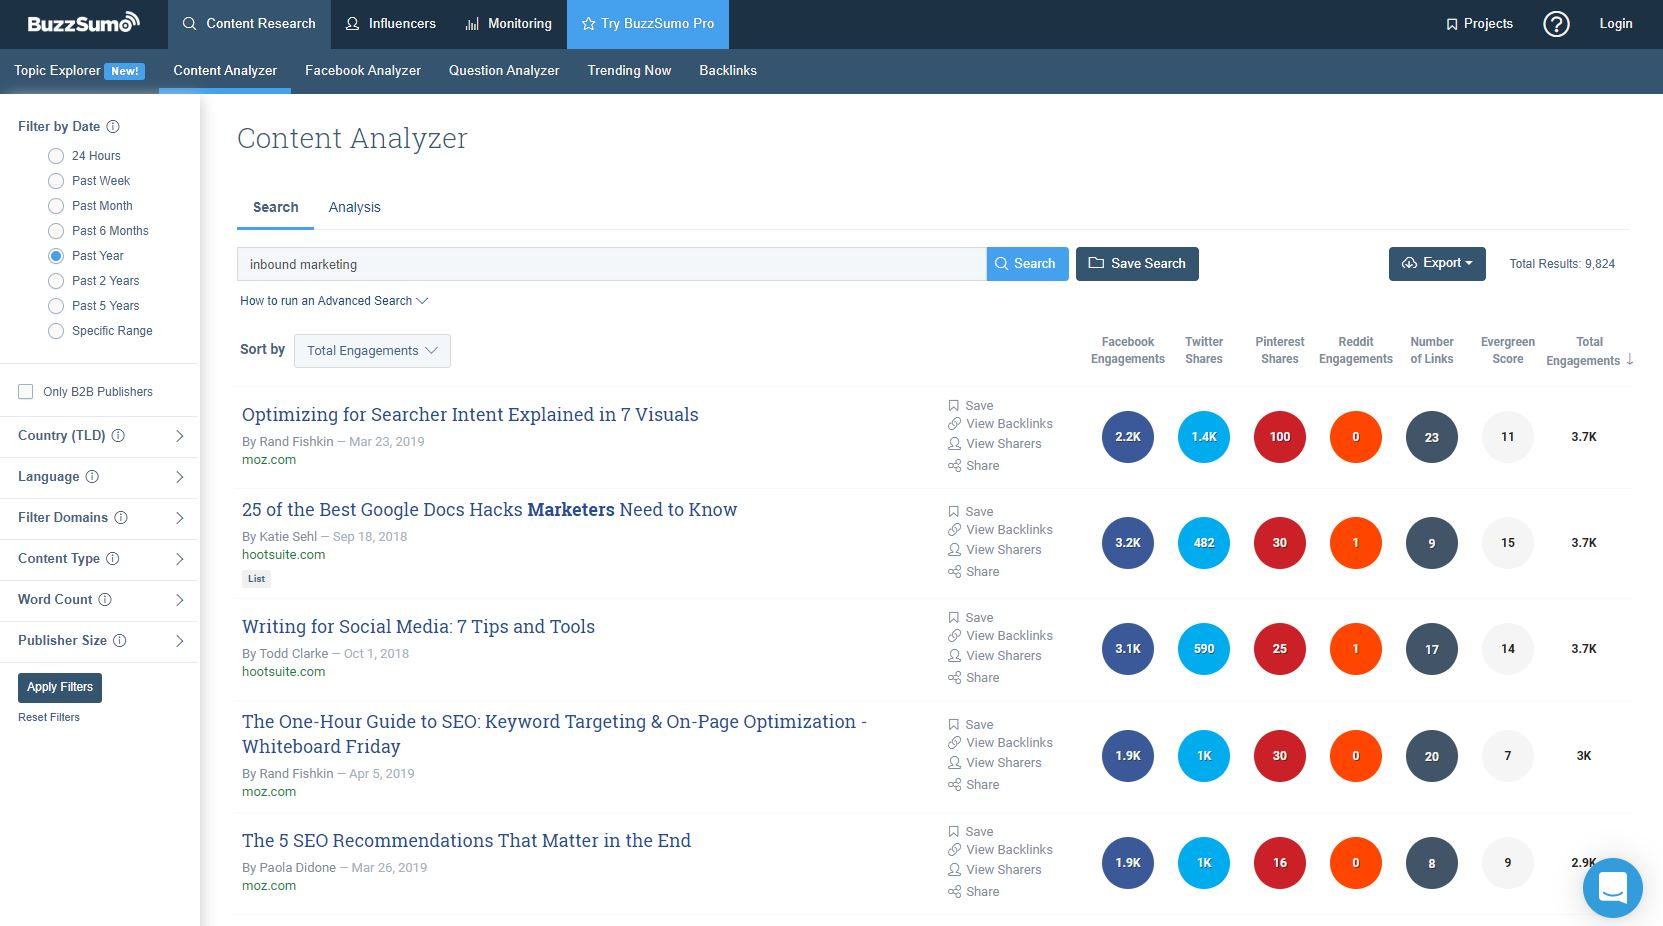 Buzzsumo Social Media Monitoring